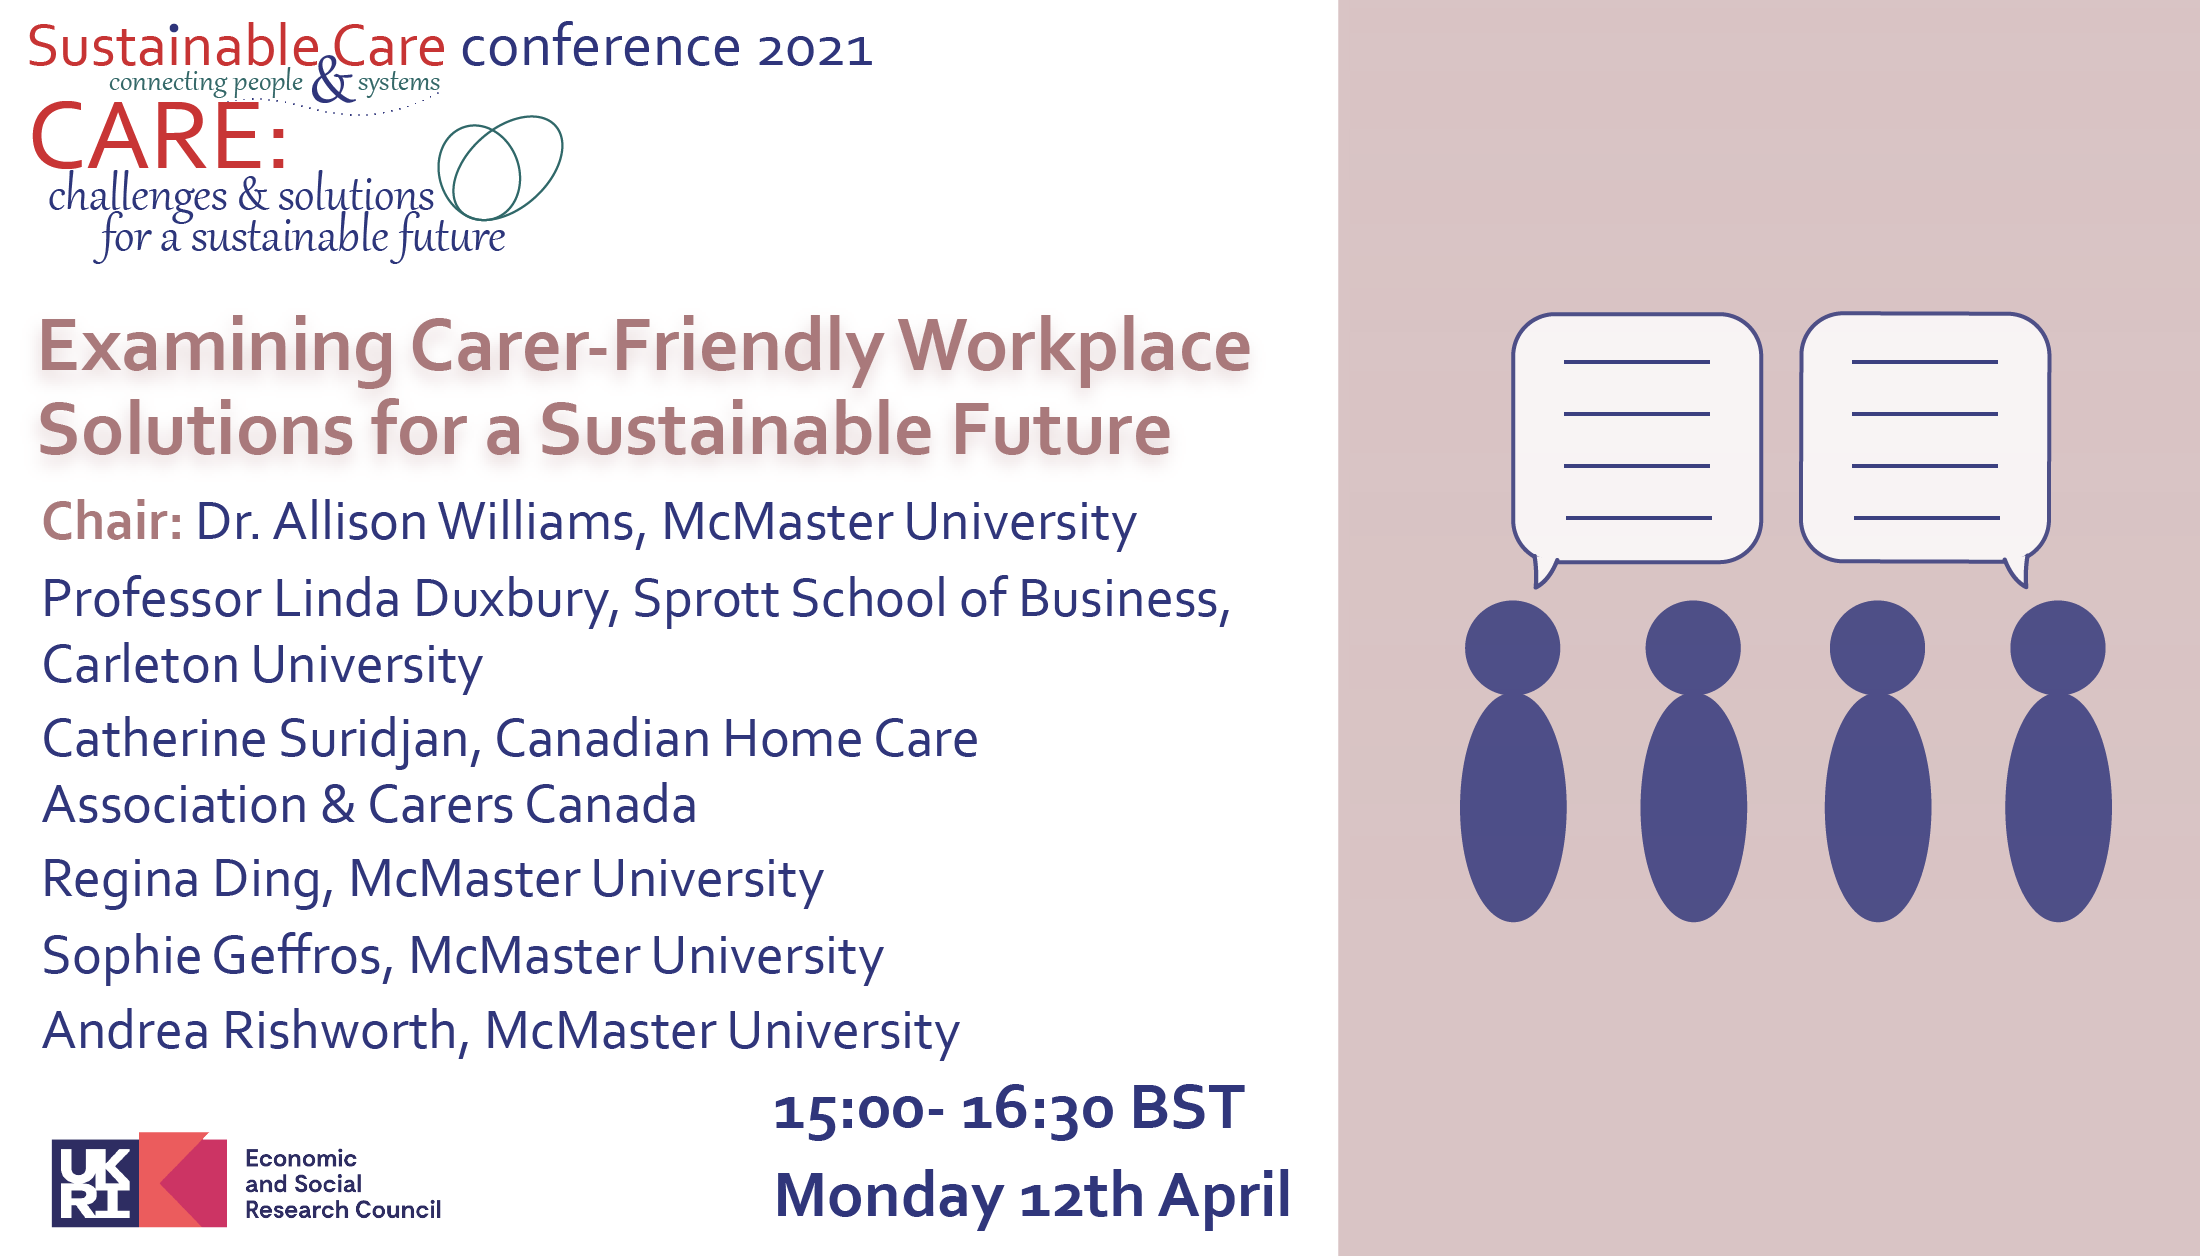 Examining Carer-Friendly Workplace Solutions for a Sustainable Future, 15:00- 16:30 BST Monday 12th April